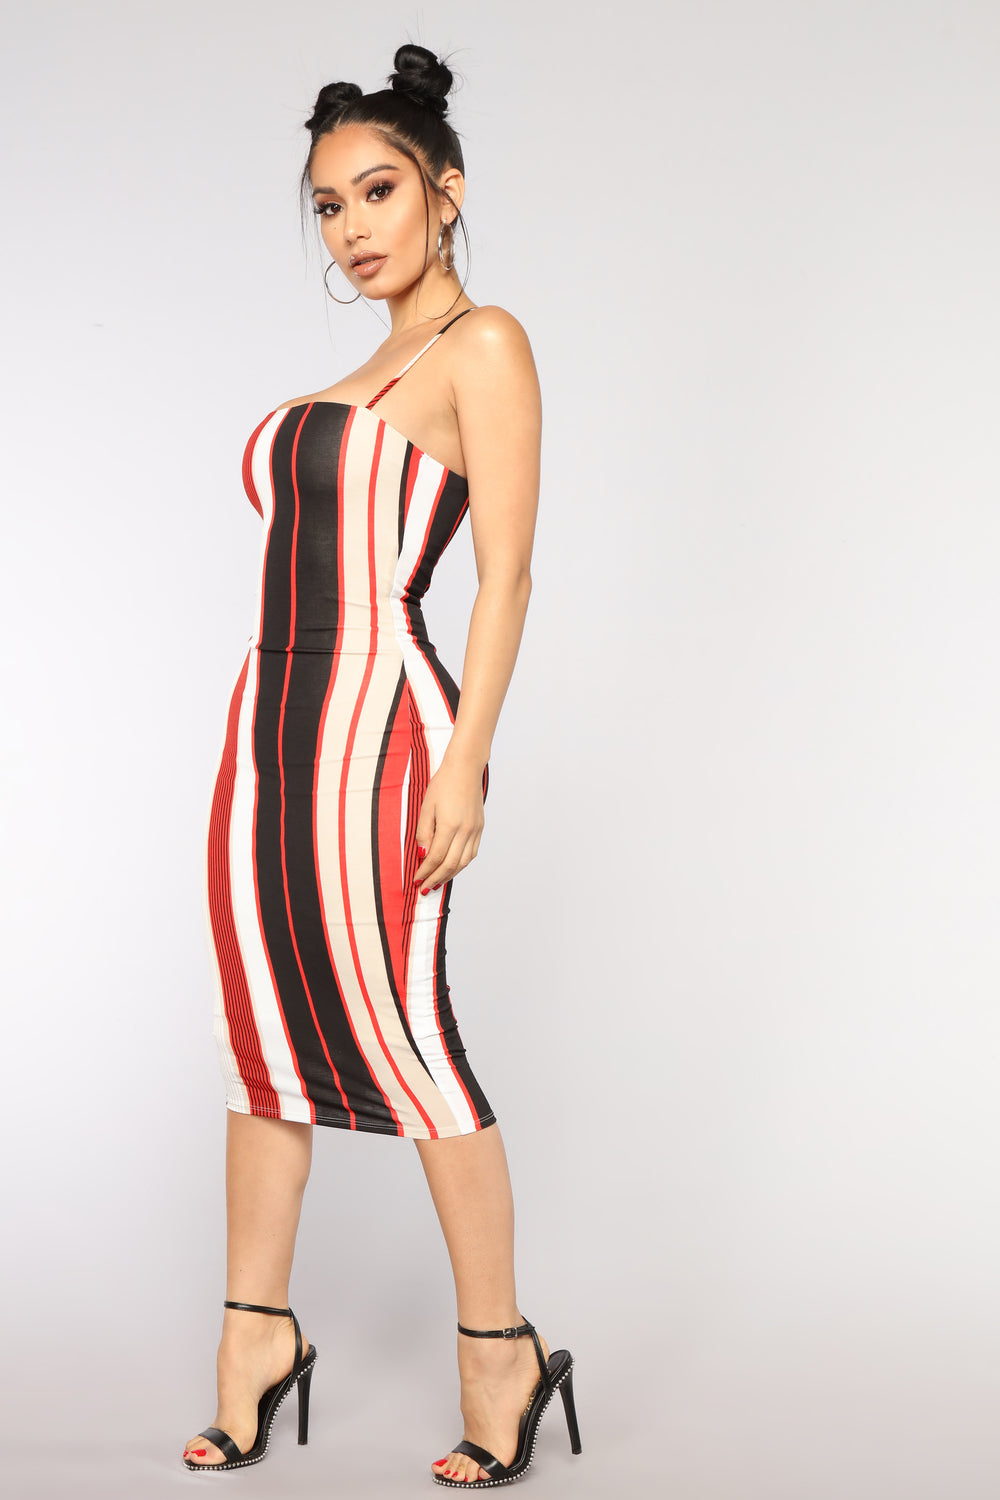 Ezy Rider Striped Dress - Red